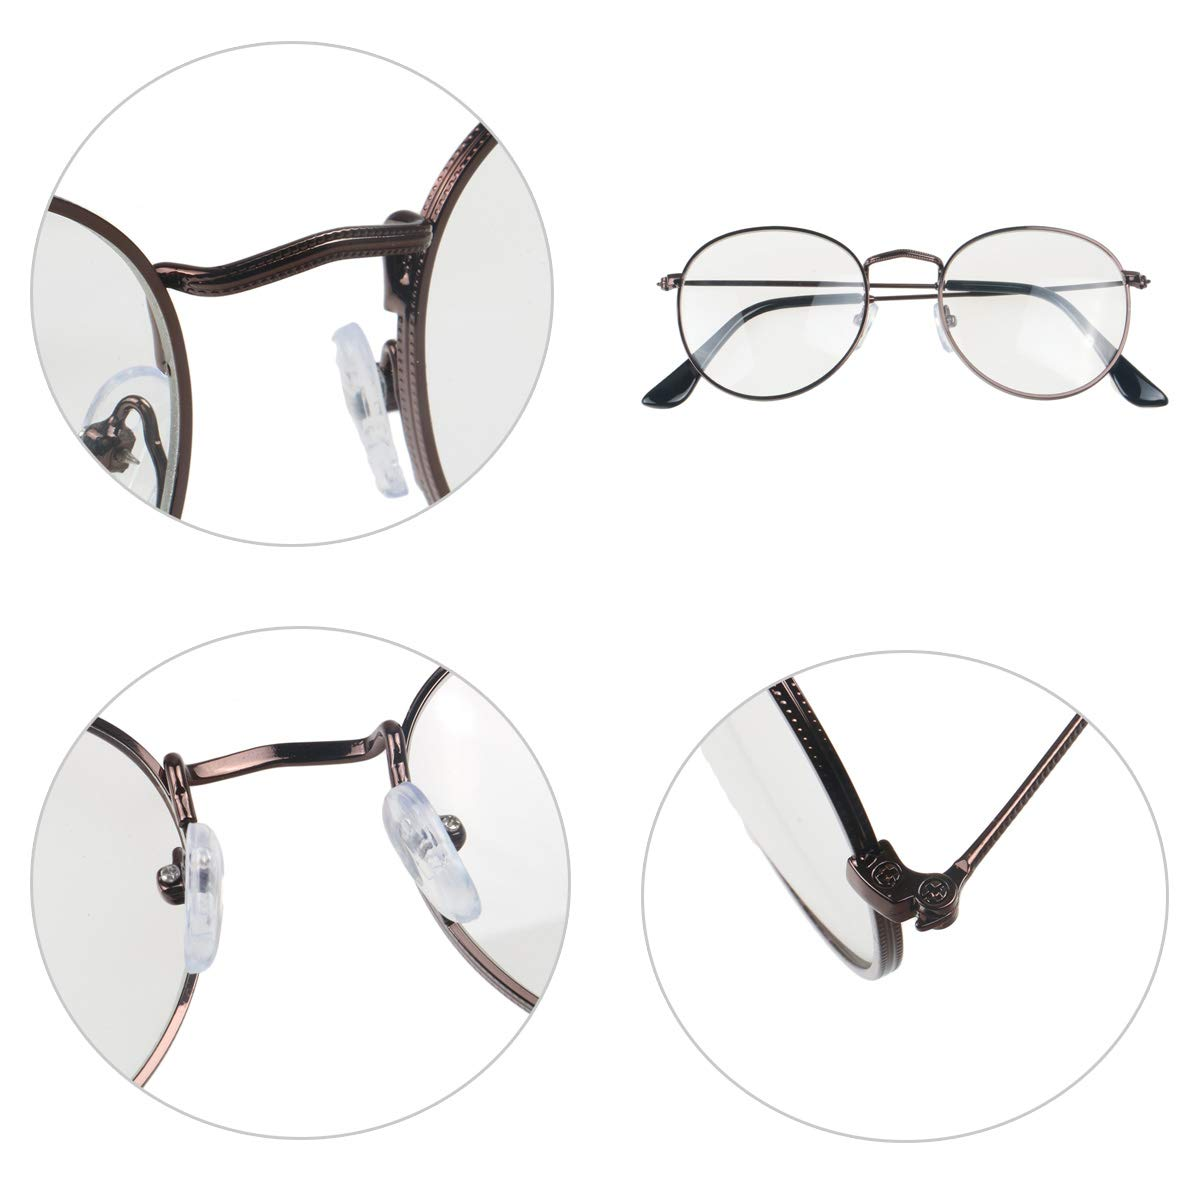 3520f44c472a Simvey Classic Vintage Round Circle Metal Glasses Frame Clear Lens   Amazon.ca  Clothing   Accessories